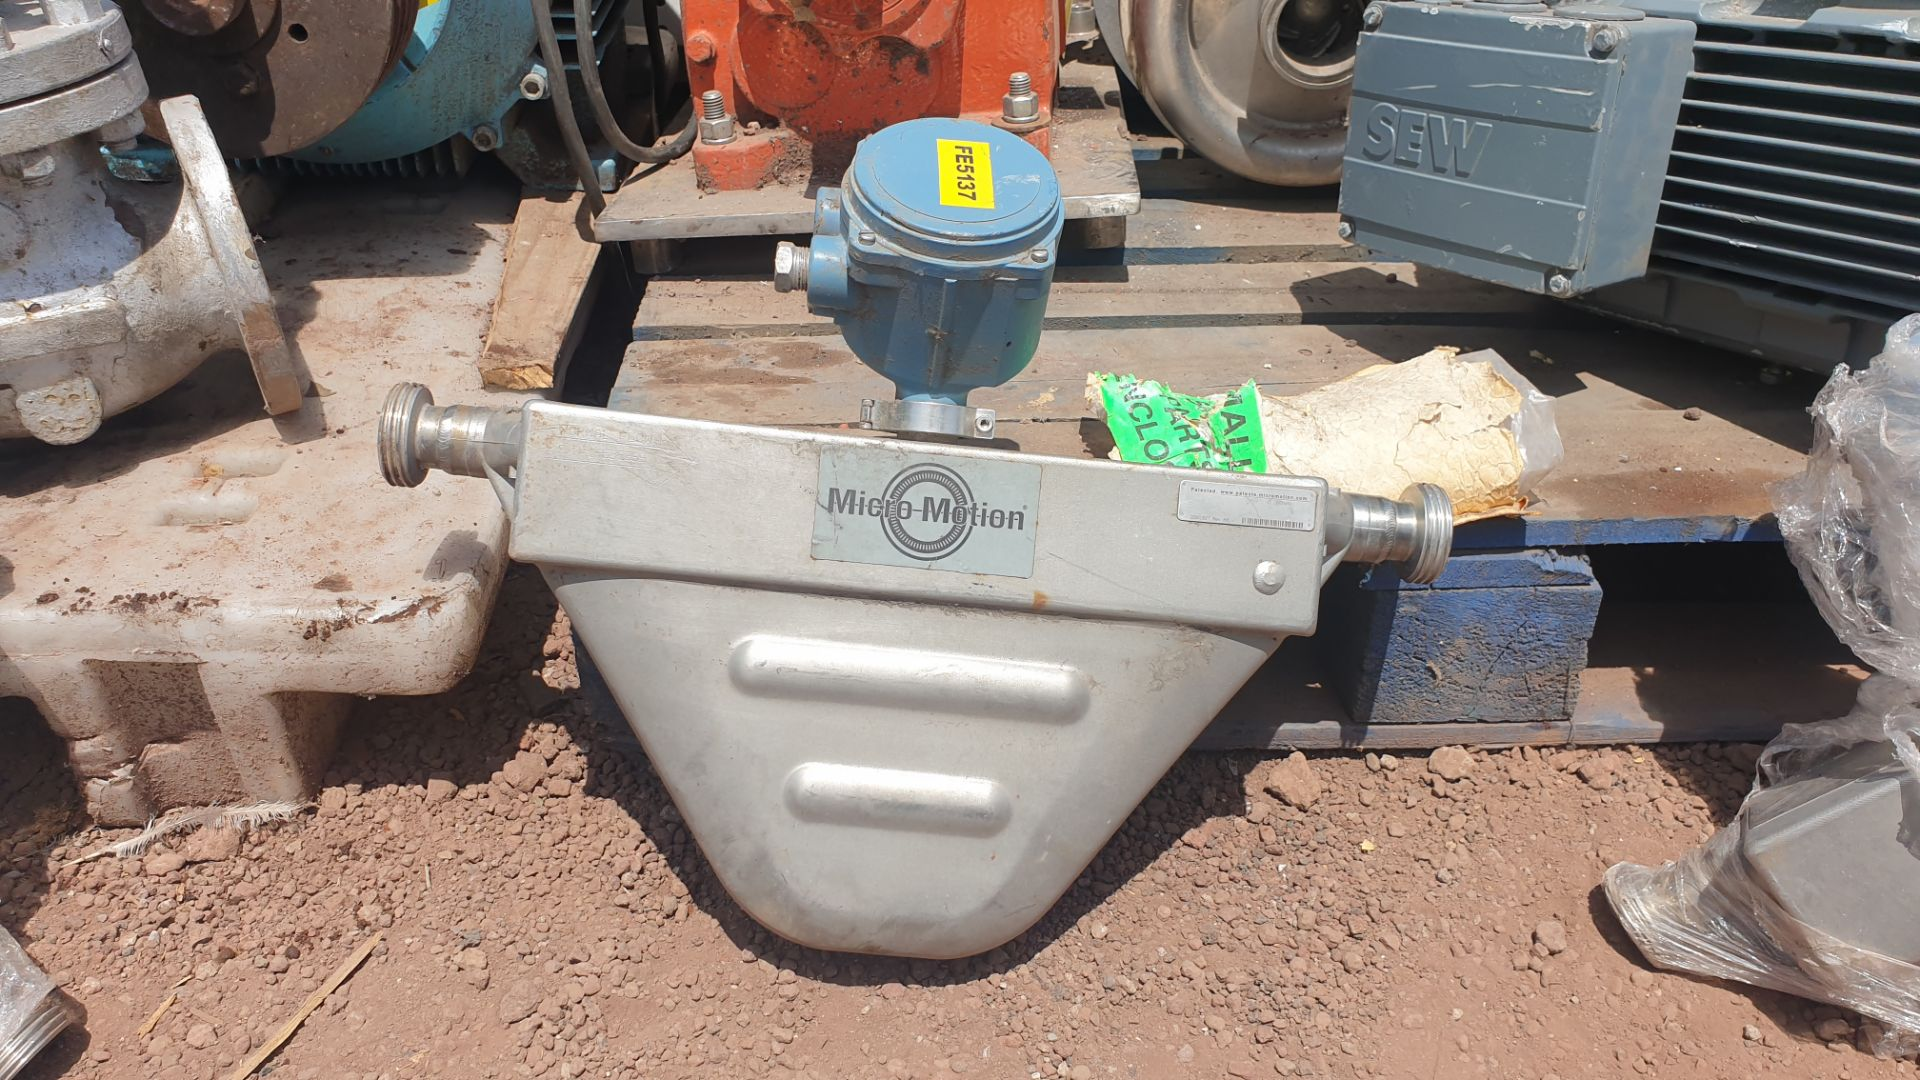 Micromotion Flow meter, model F100S230C2BMSZZZZ NS 14639520 2016 - Image 7 of 10